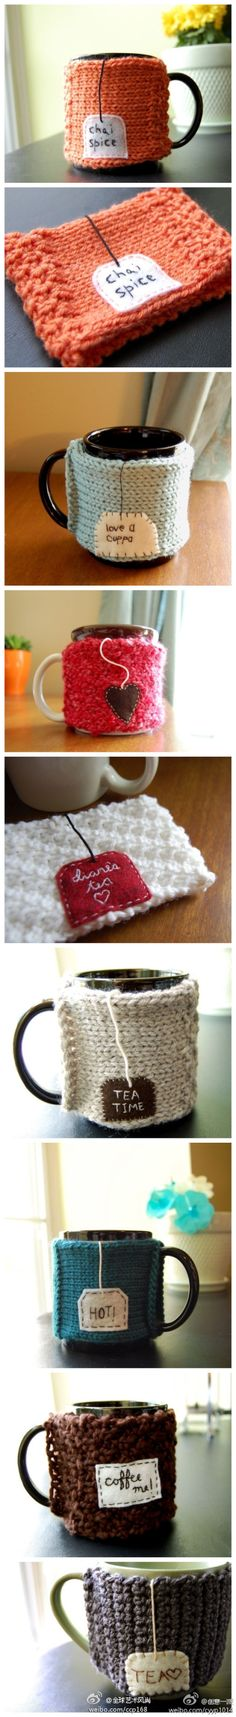 Coffee And Tea cozies- so easy to crochet!! maybe my crochet career will start here! these are so cute!